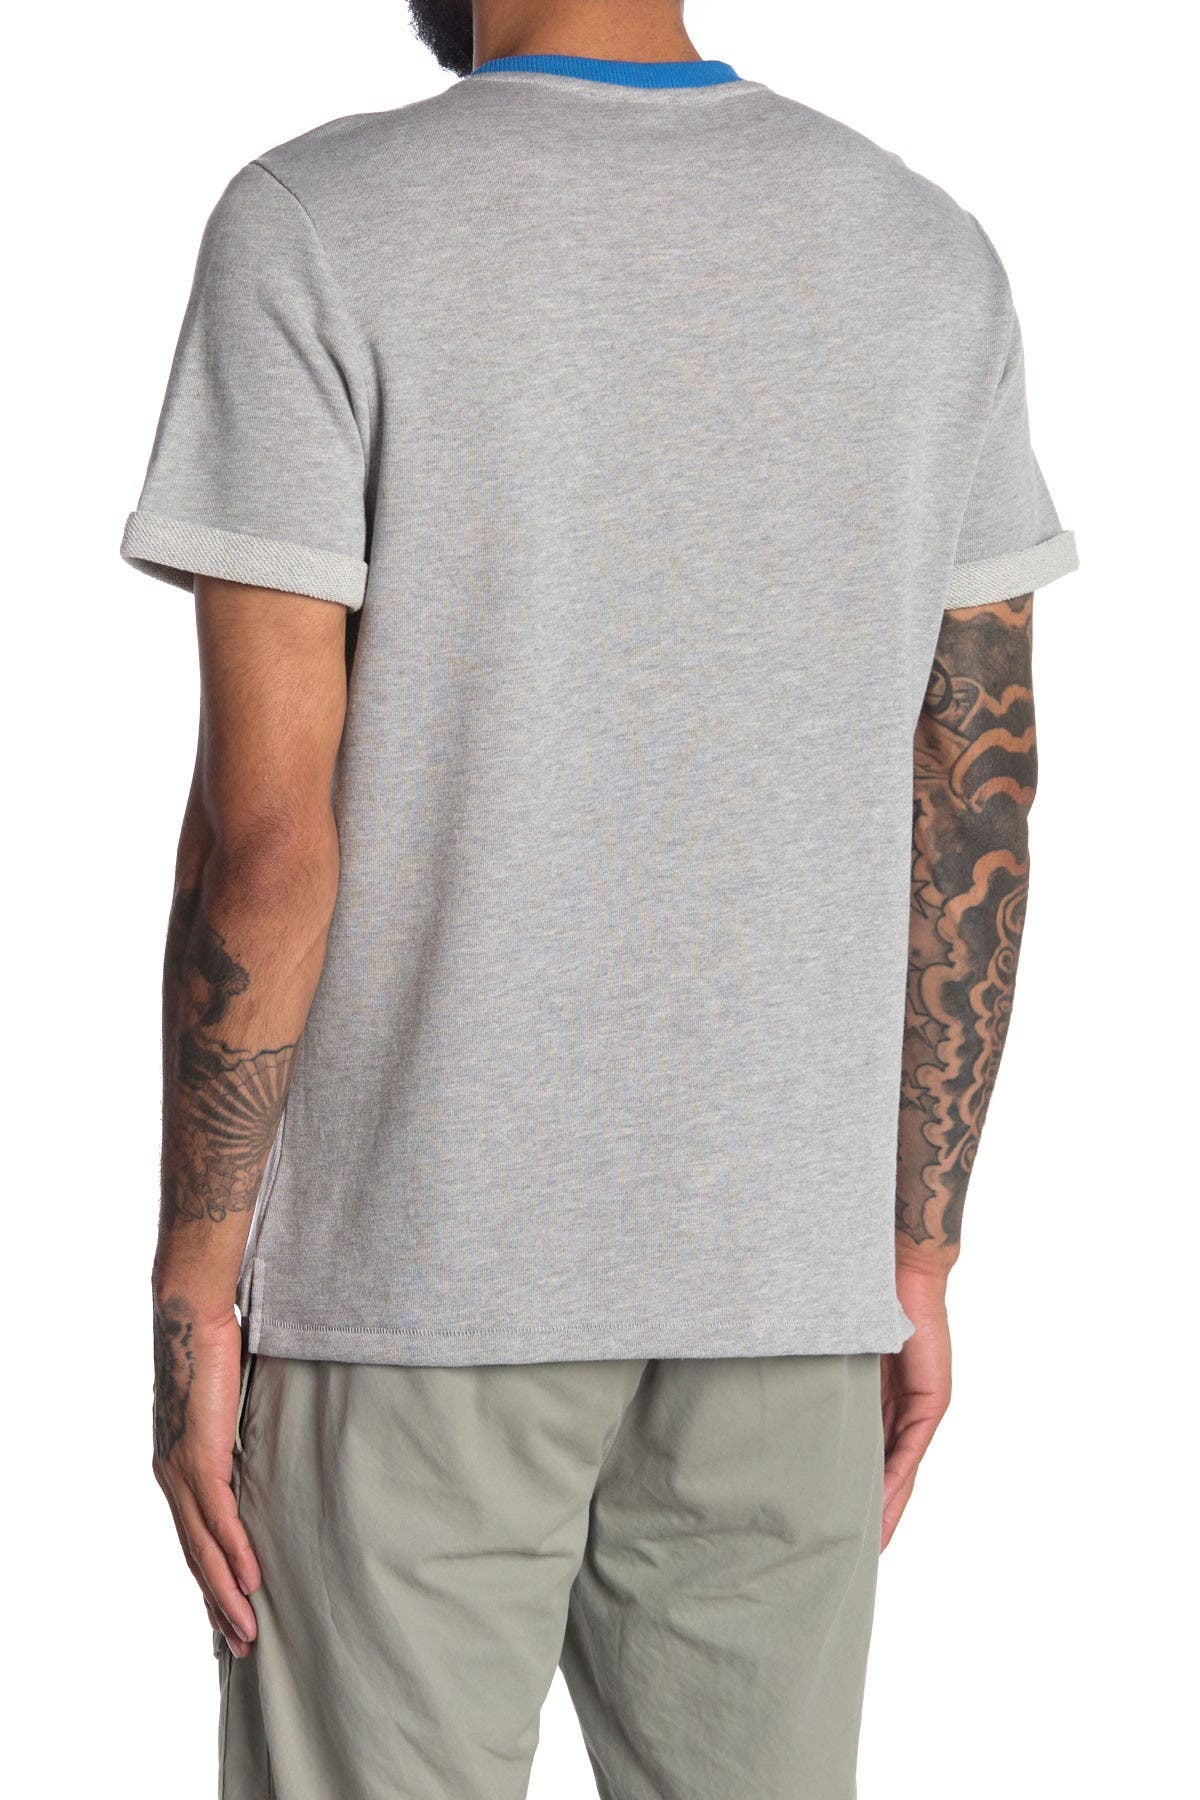 Image of Sovereign Code Limited Pocket T-Shirt